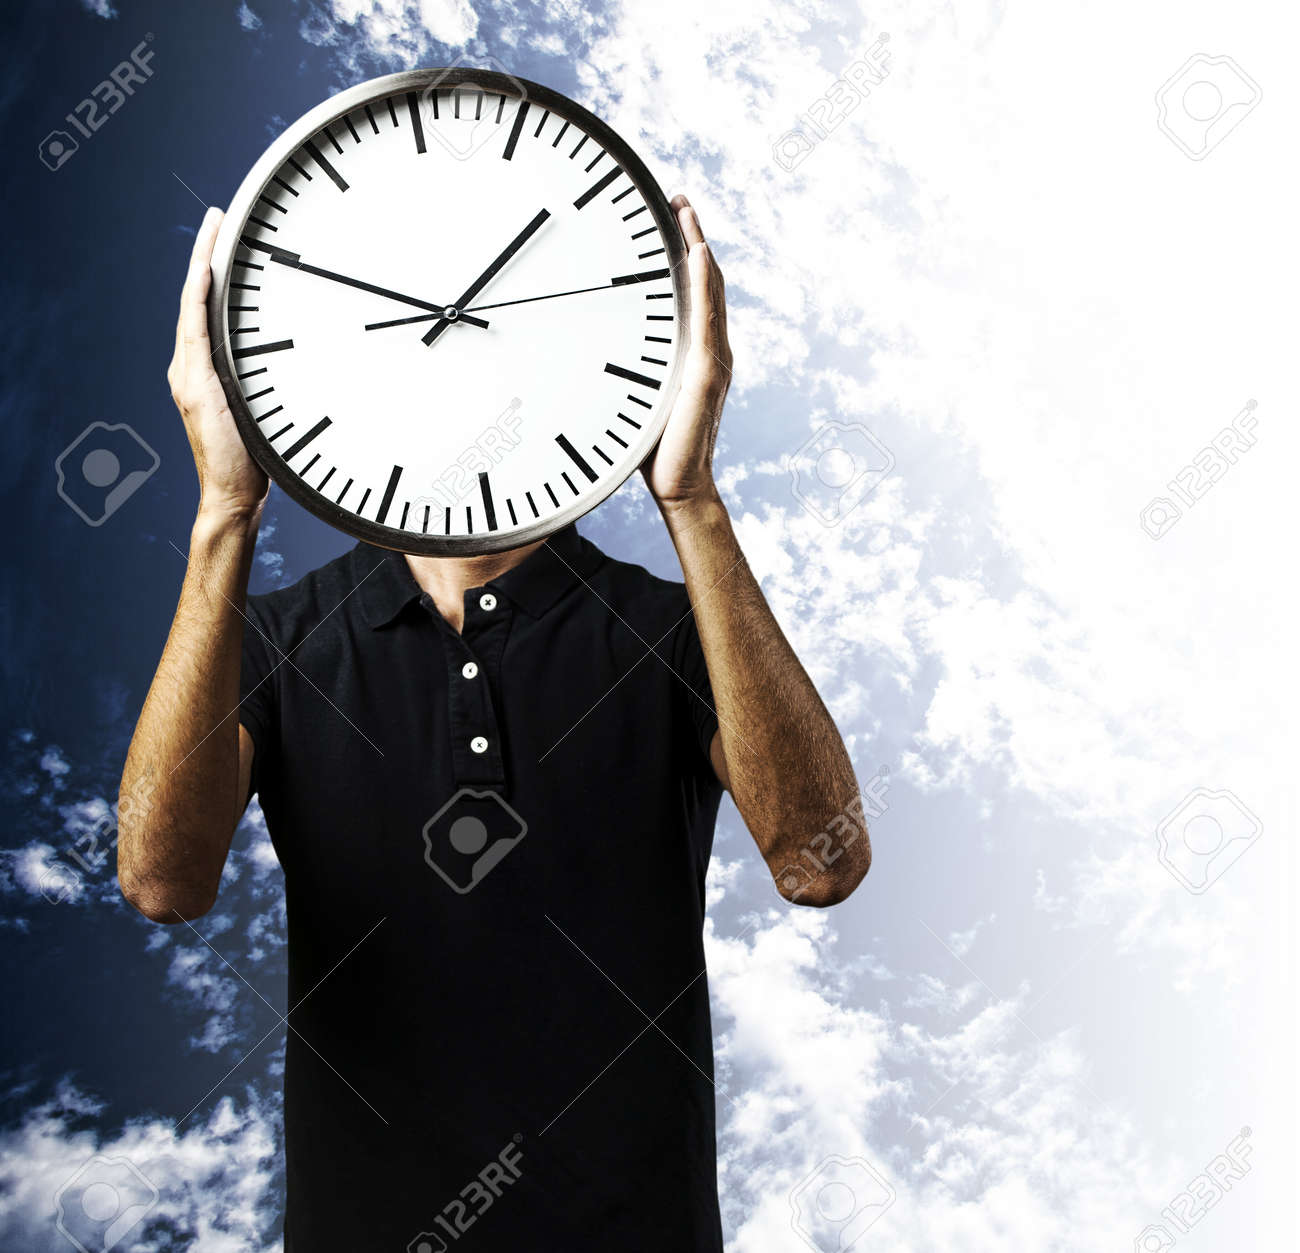 portrait of young man holding a clock with his hands against a cloudy sky background Stock Photo - 12656781